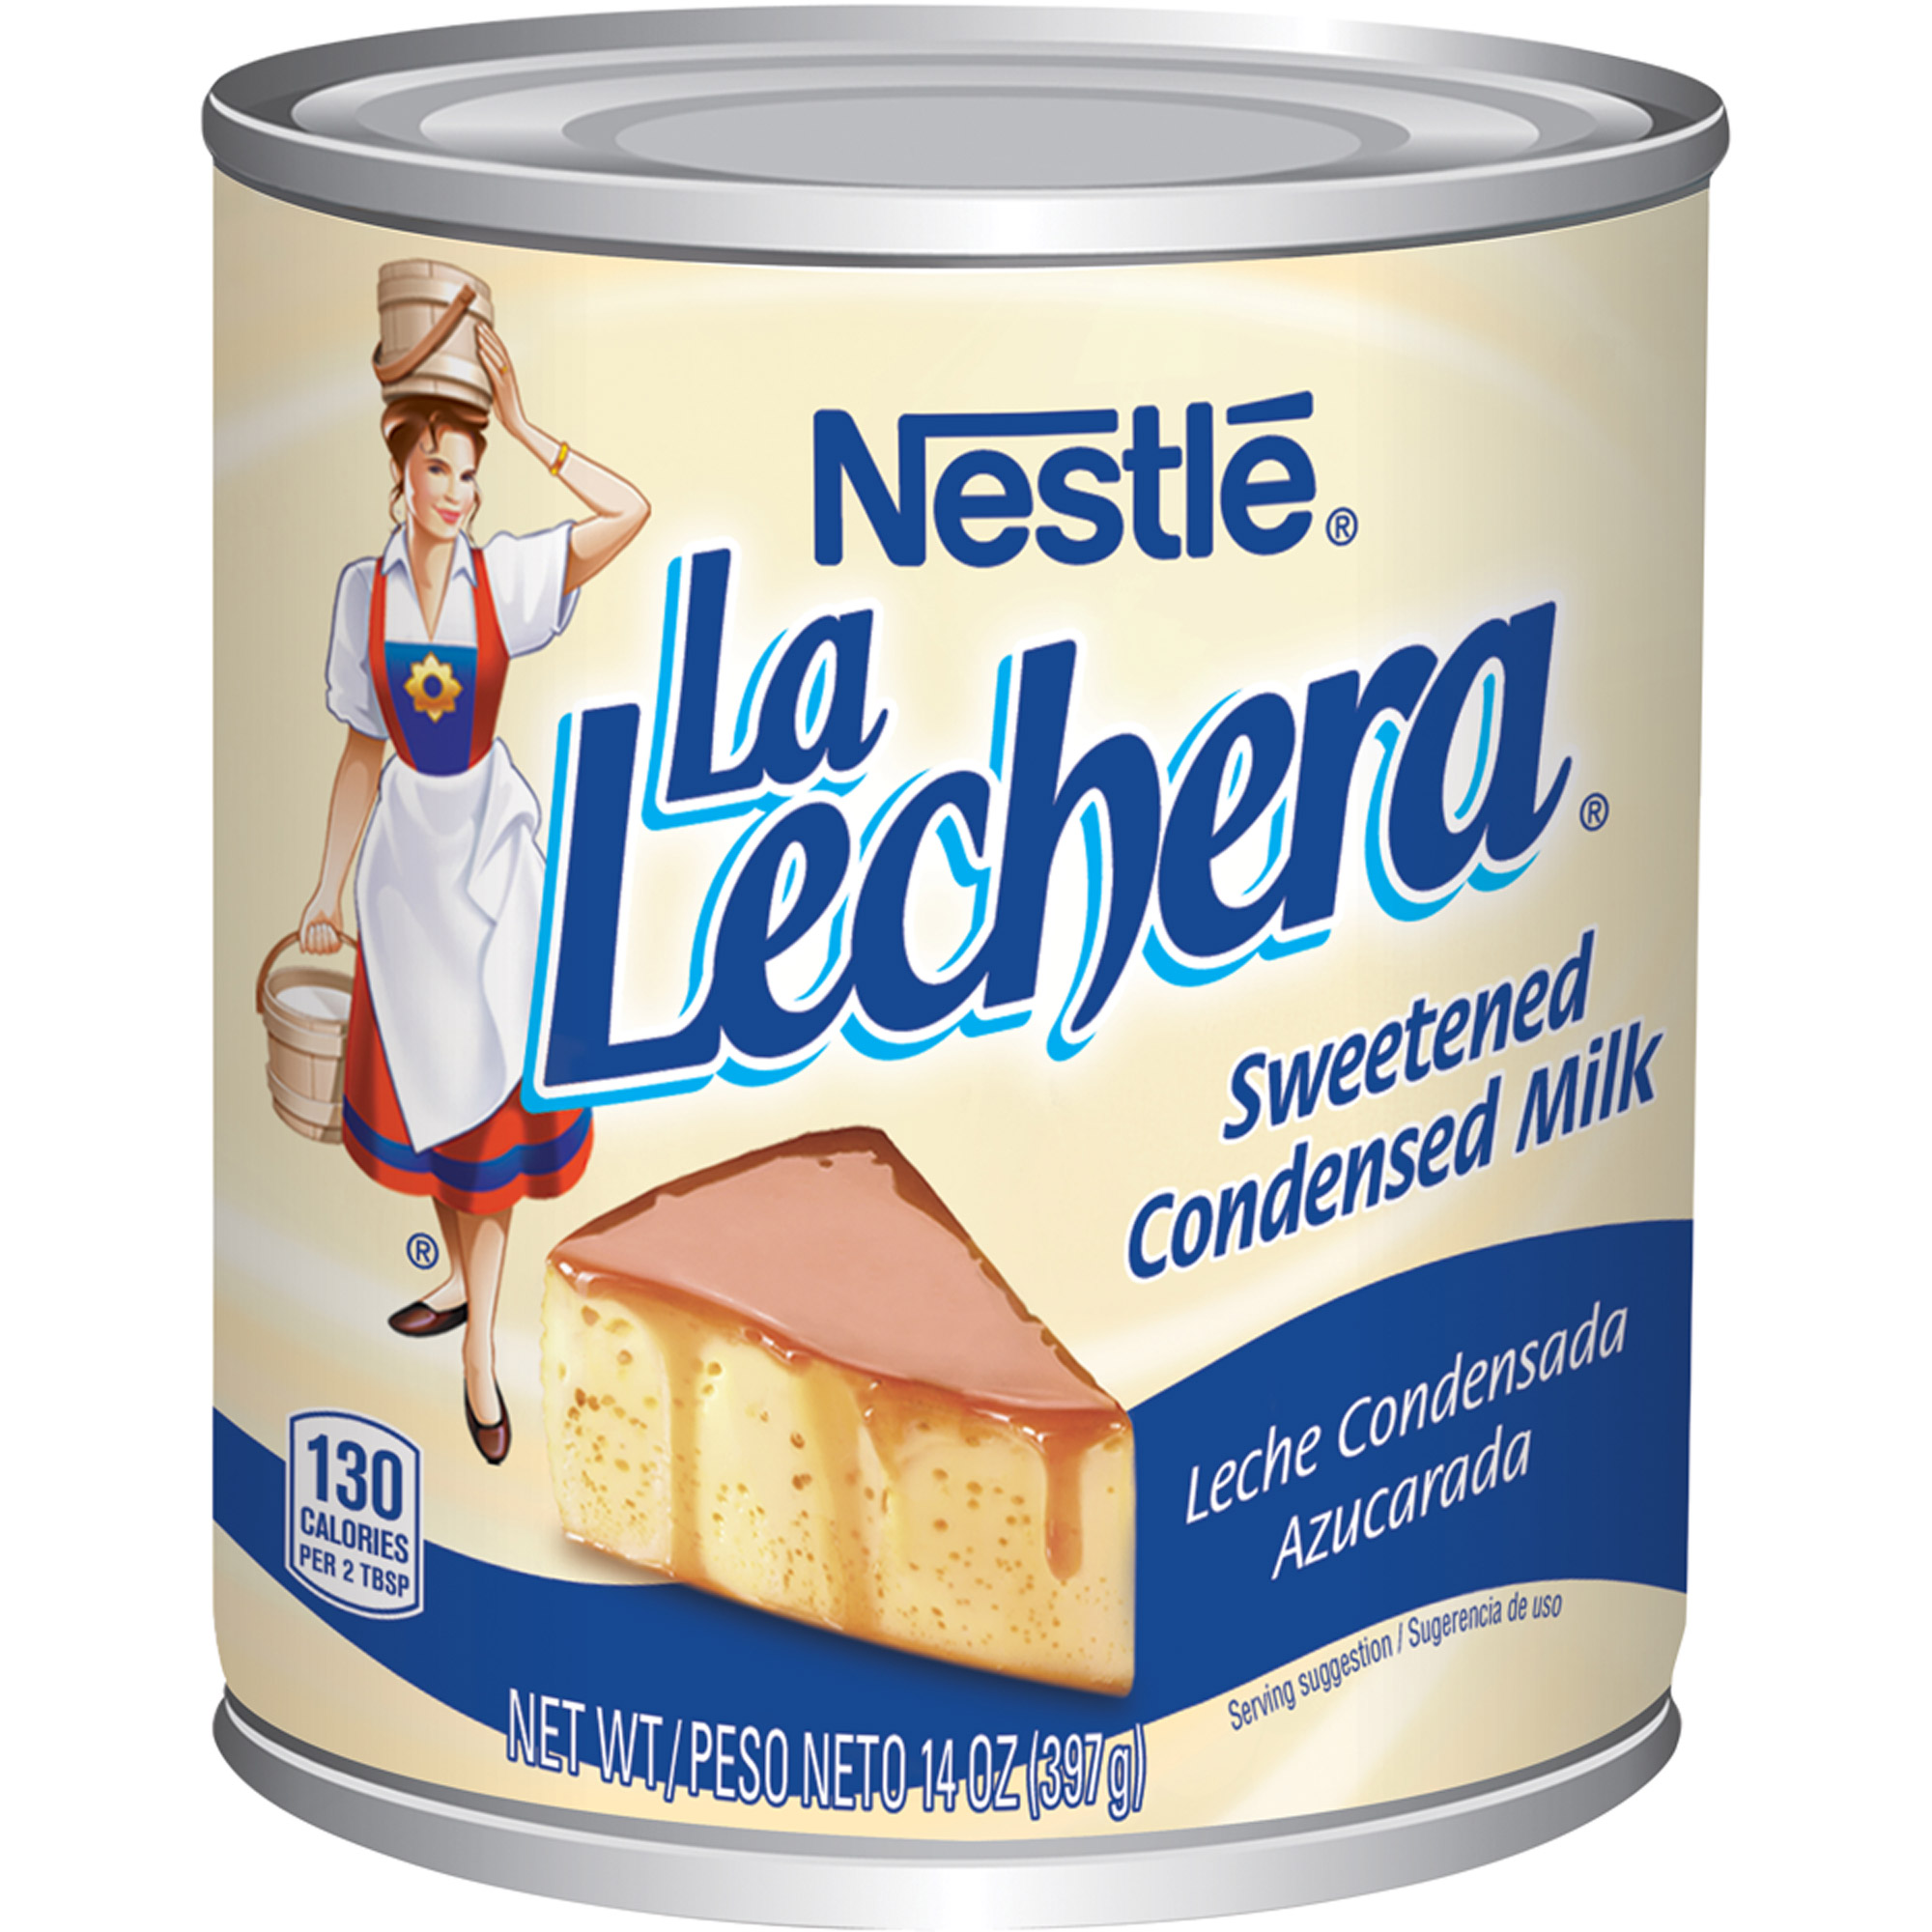 Nestle La Lechera Sweetened Condensed Milk, 14 oz